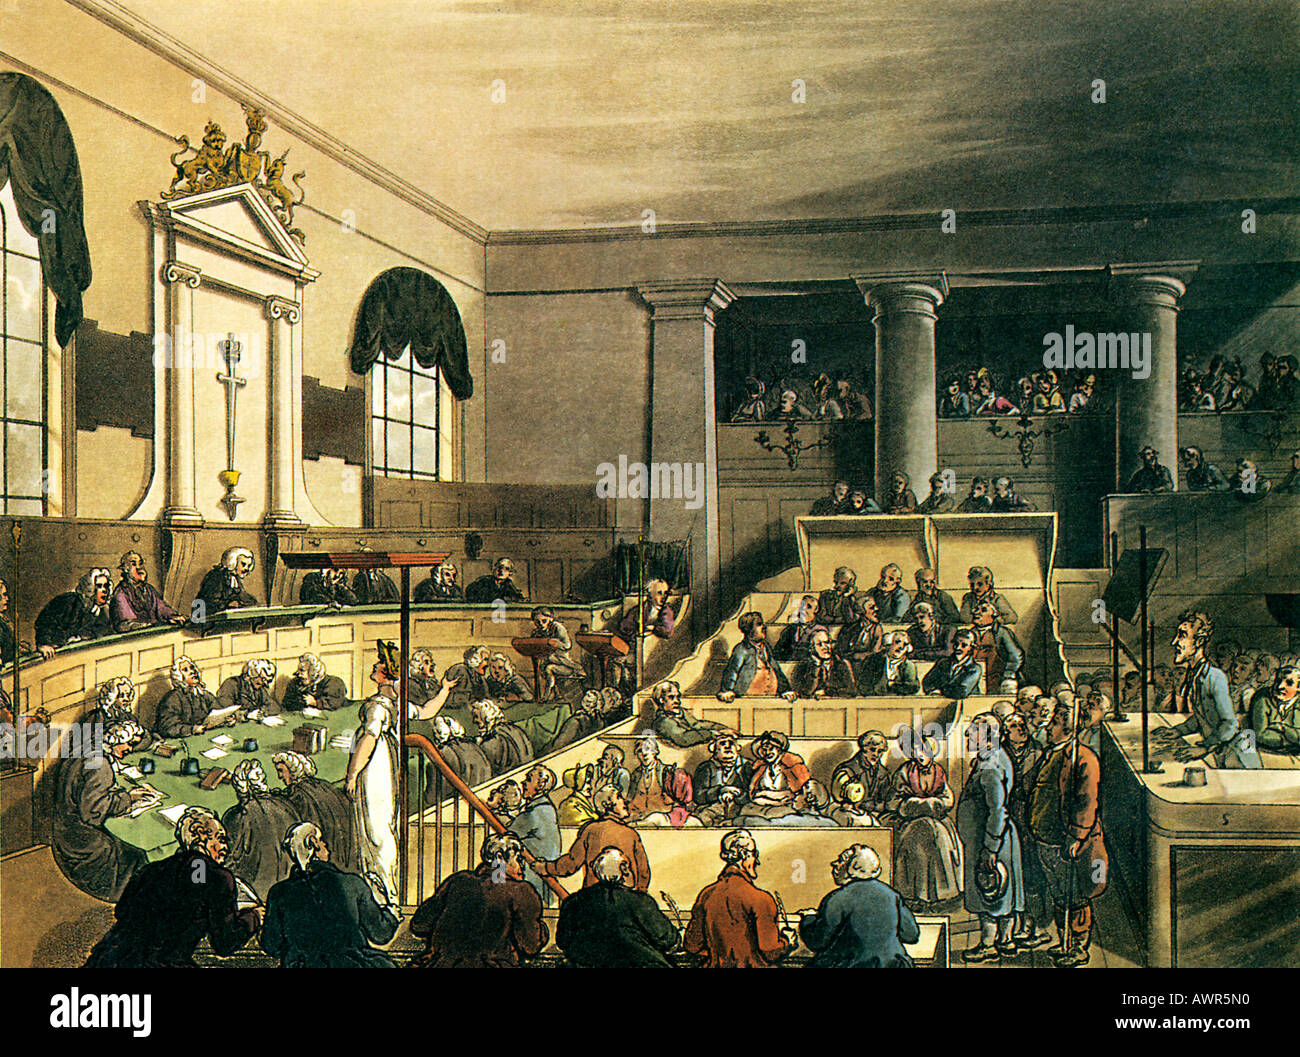 Old Bailey 1805 from the Microcosm of London illustrated by Rowlandson Pugin - Stock Image